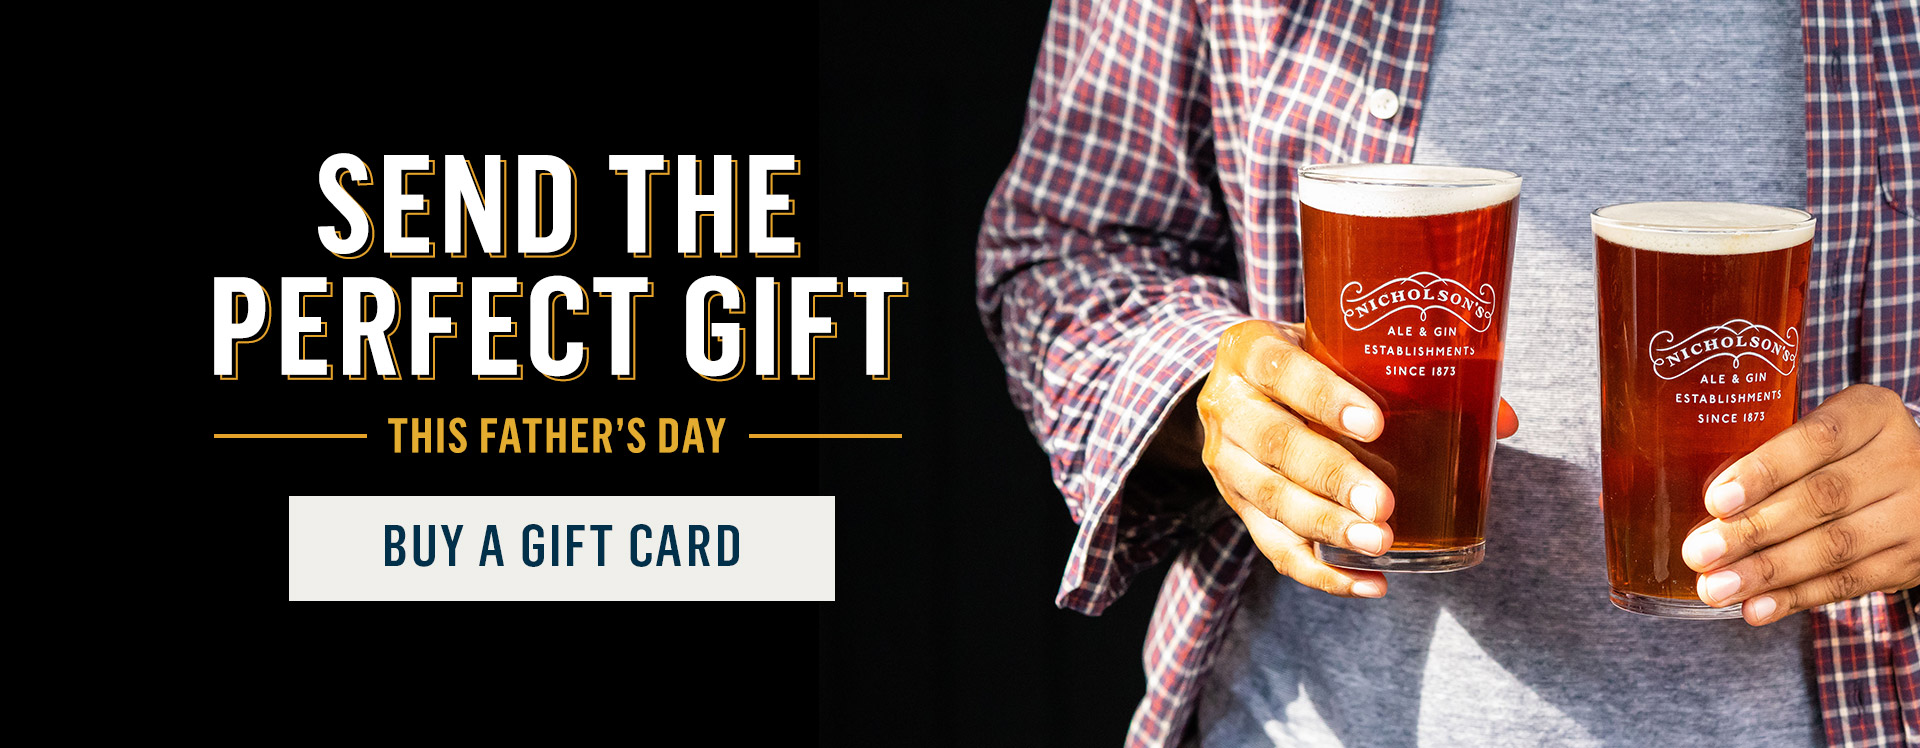 Buy a Gift Card Today